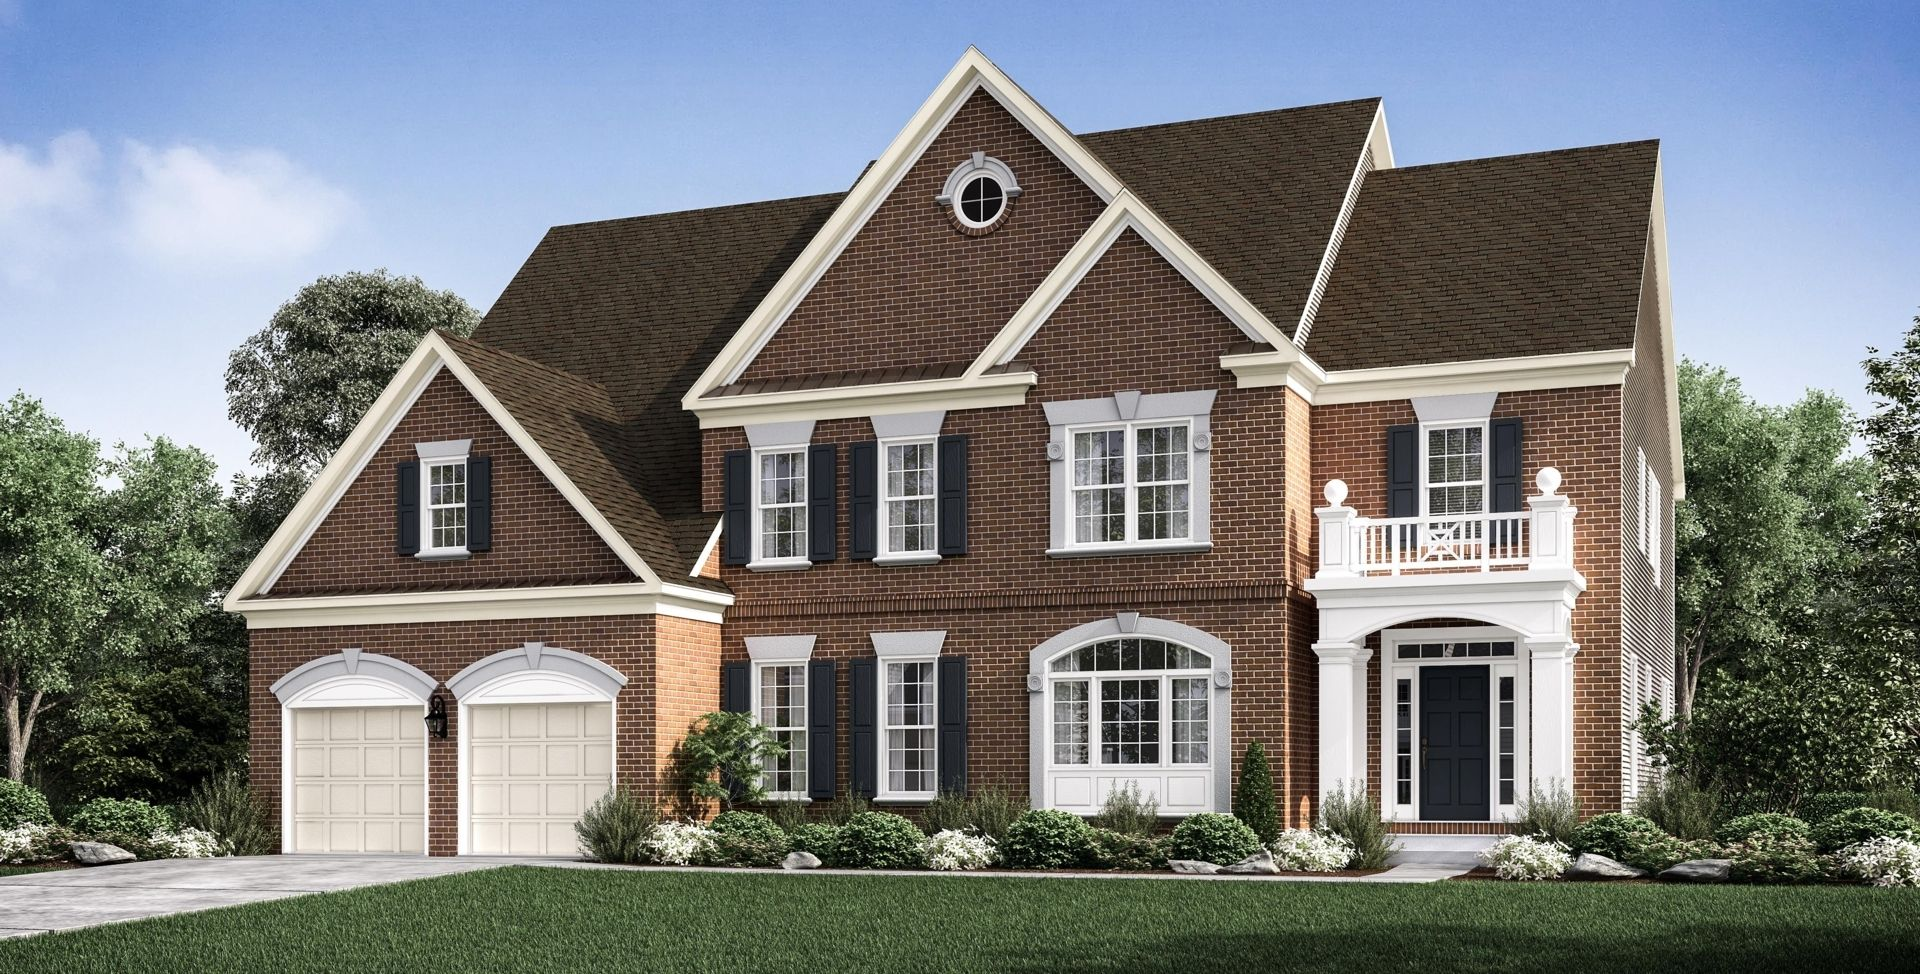 New Home Builders In Oakland County Michigan